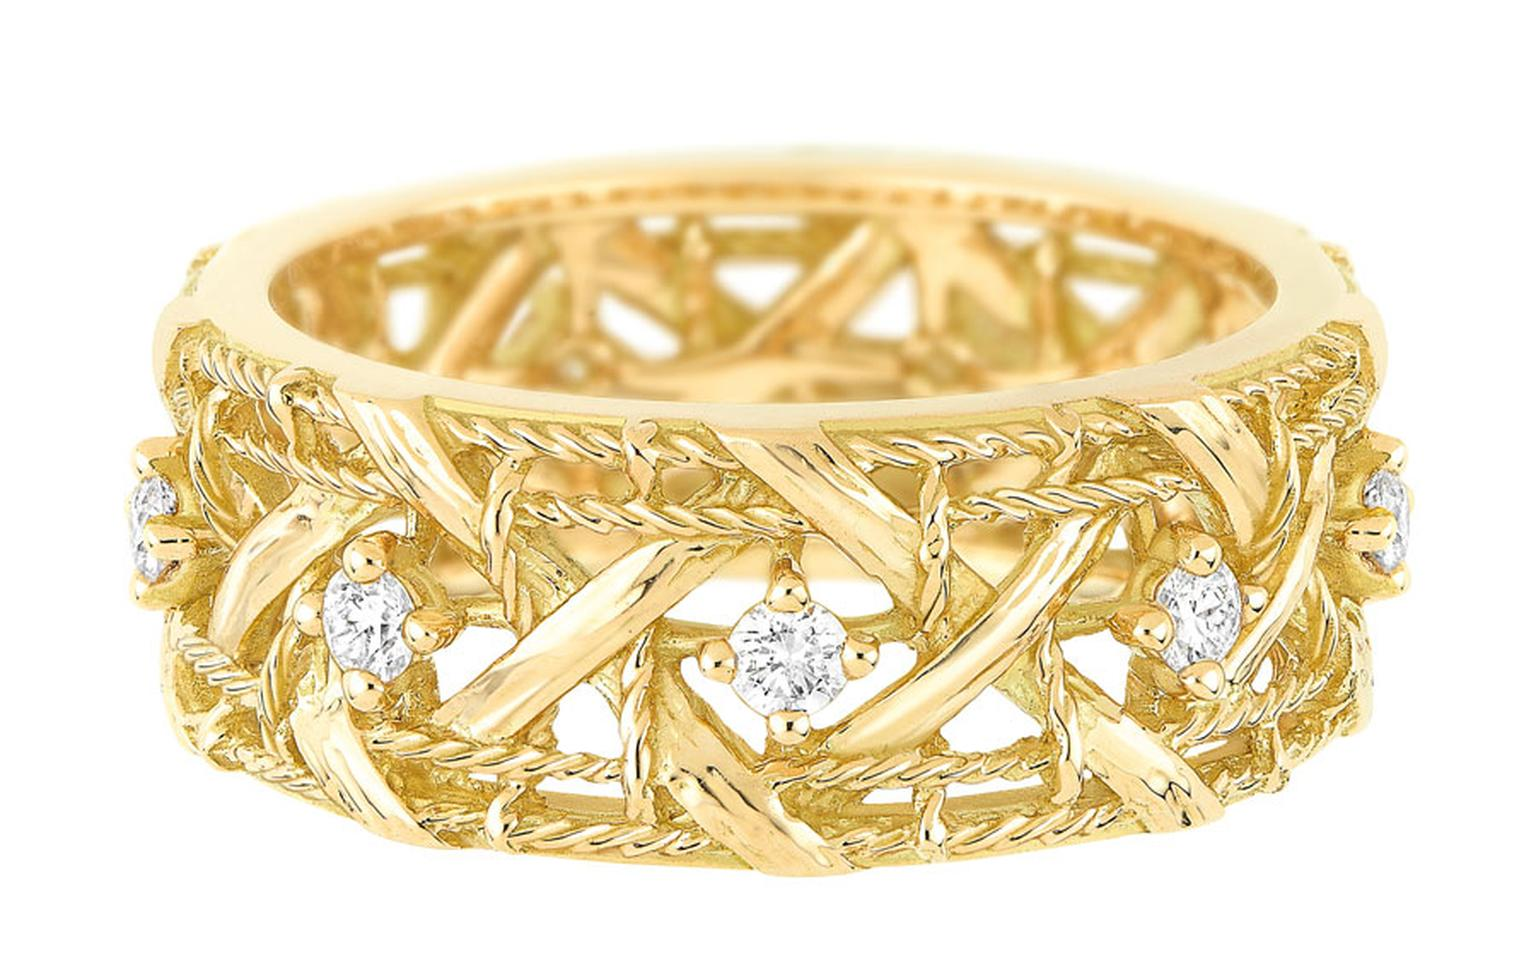 Dior-MY-DIOR-SM-RING-YELLOW-GOLD-AND-DIAMONDS.jpg